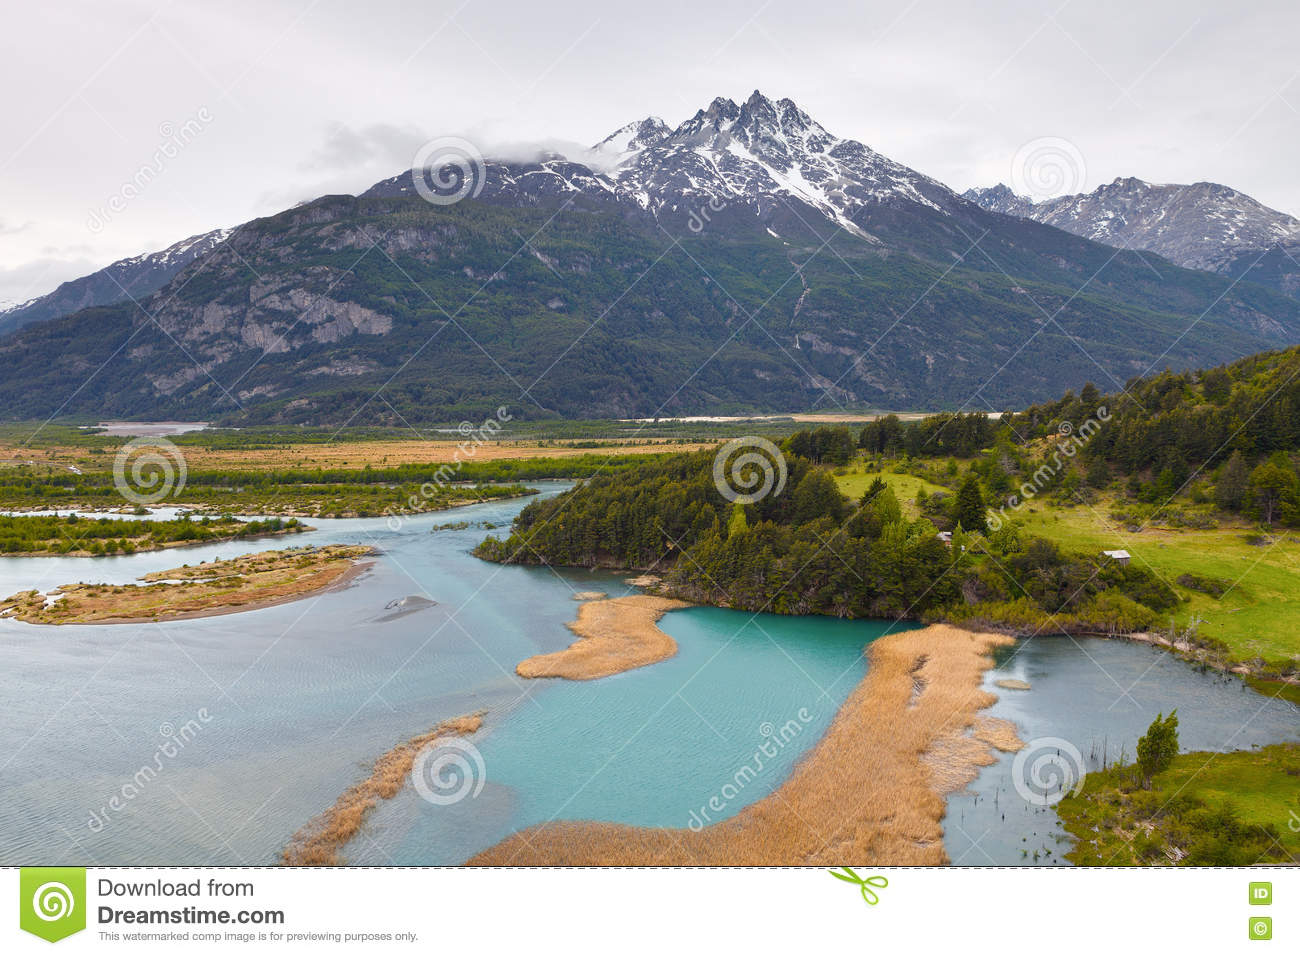 Landscape of chilean Patagonia, with meadows, the river Ibanez a